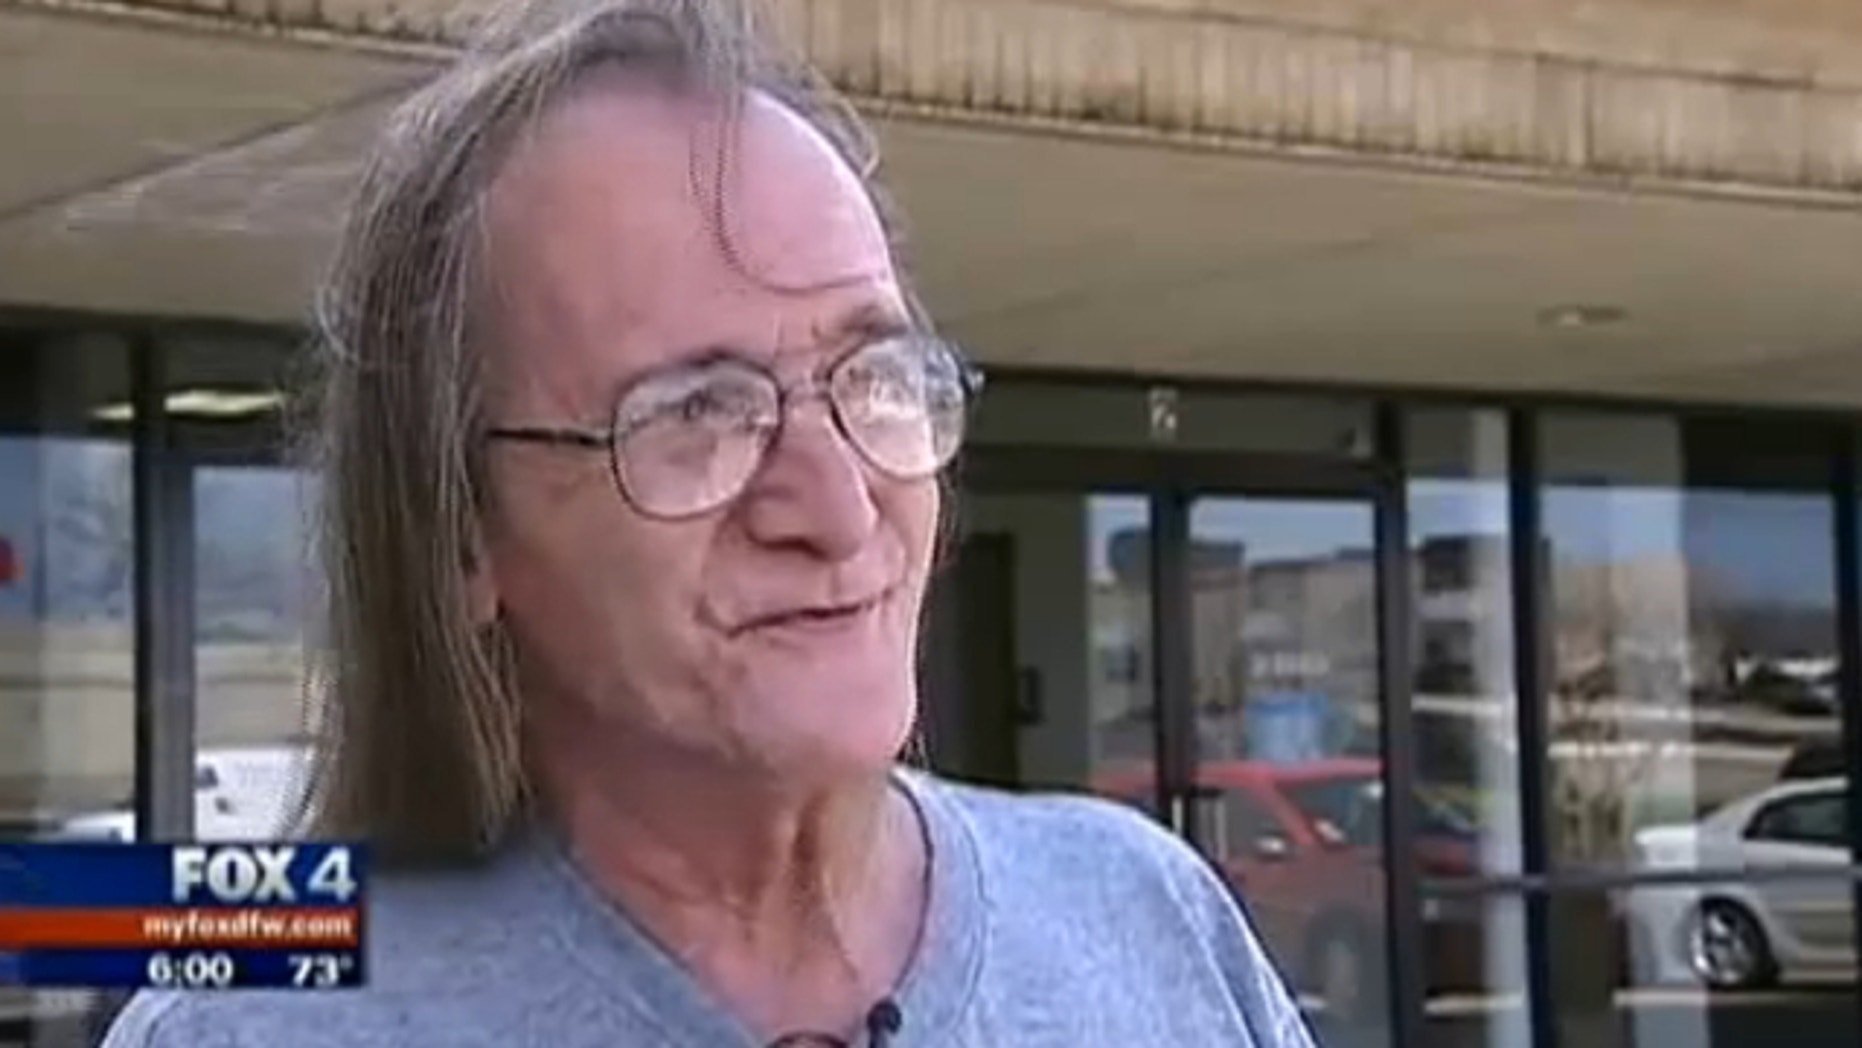 Jerry Sullivan, a Vietnam War veteran, says he is being blocked from renewing his Texas driver's license because his citizenship is unknown.